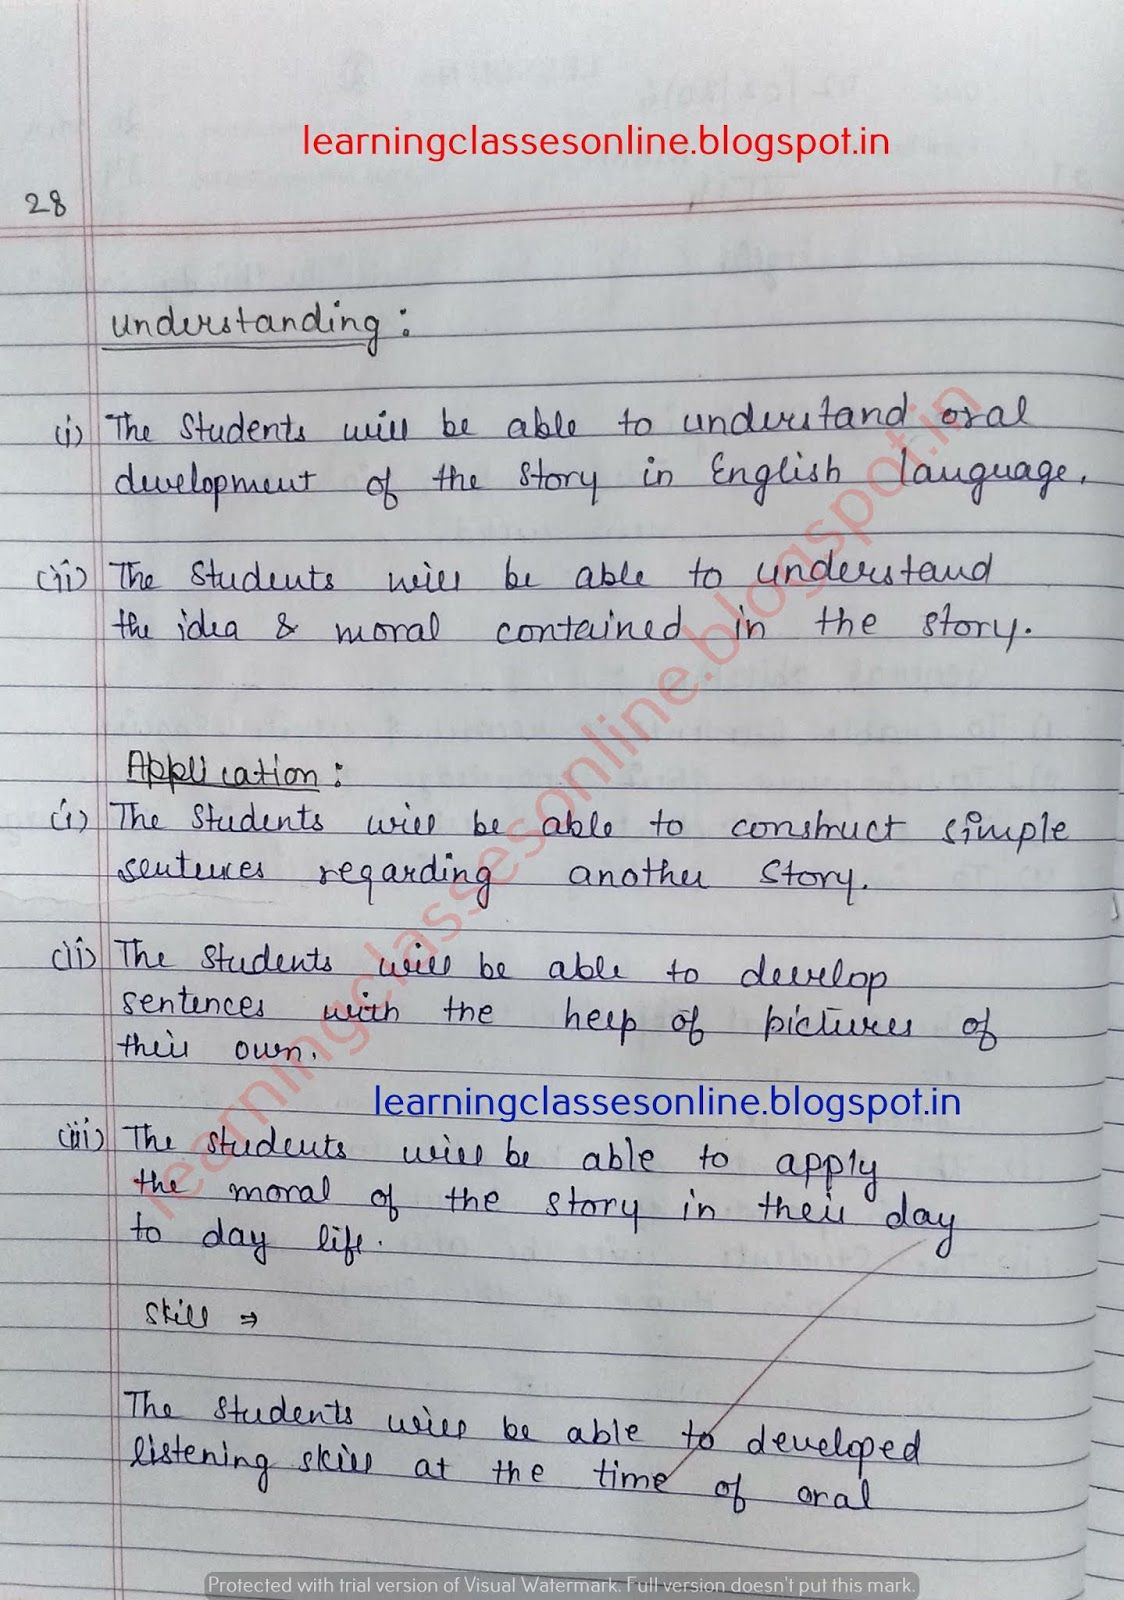 Lesson Plan For English Class 9 Ncert, Lesson Plan For